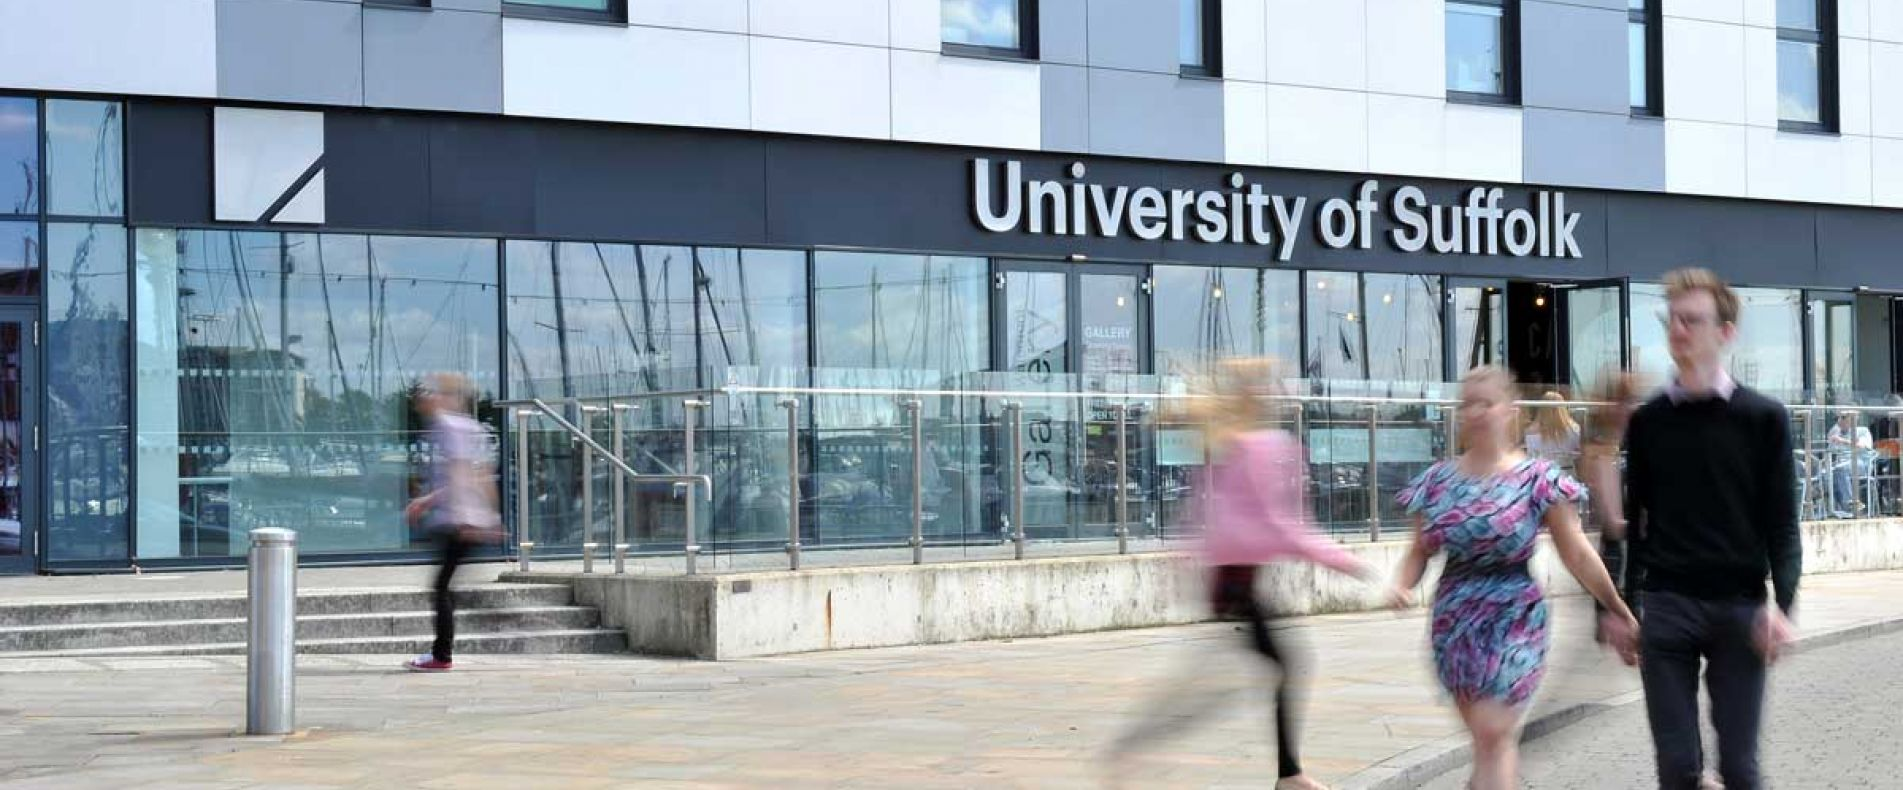 The University of Suffolk in Ipswich was evacuated on March 12 after a suspicious package was found in the post-room